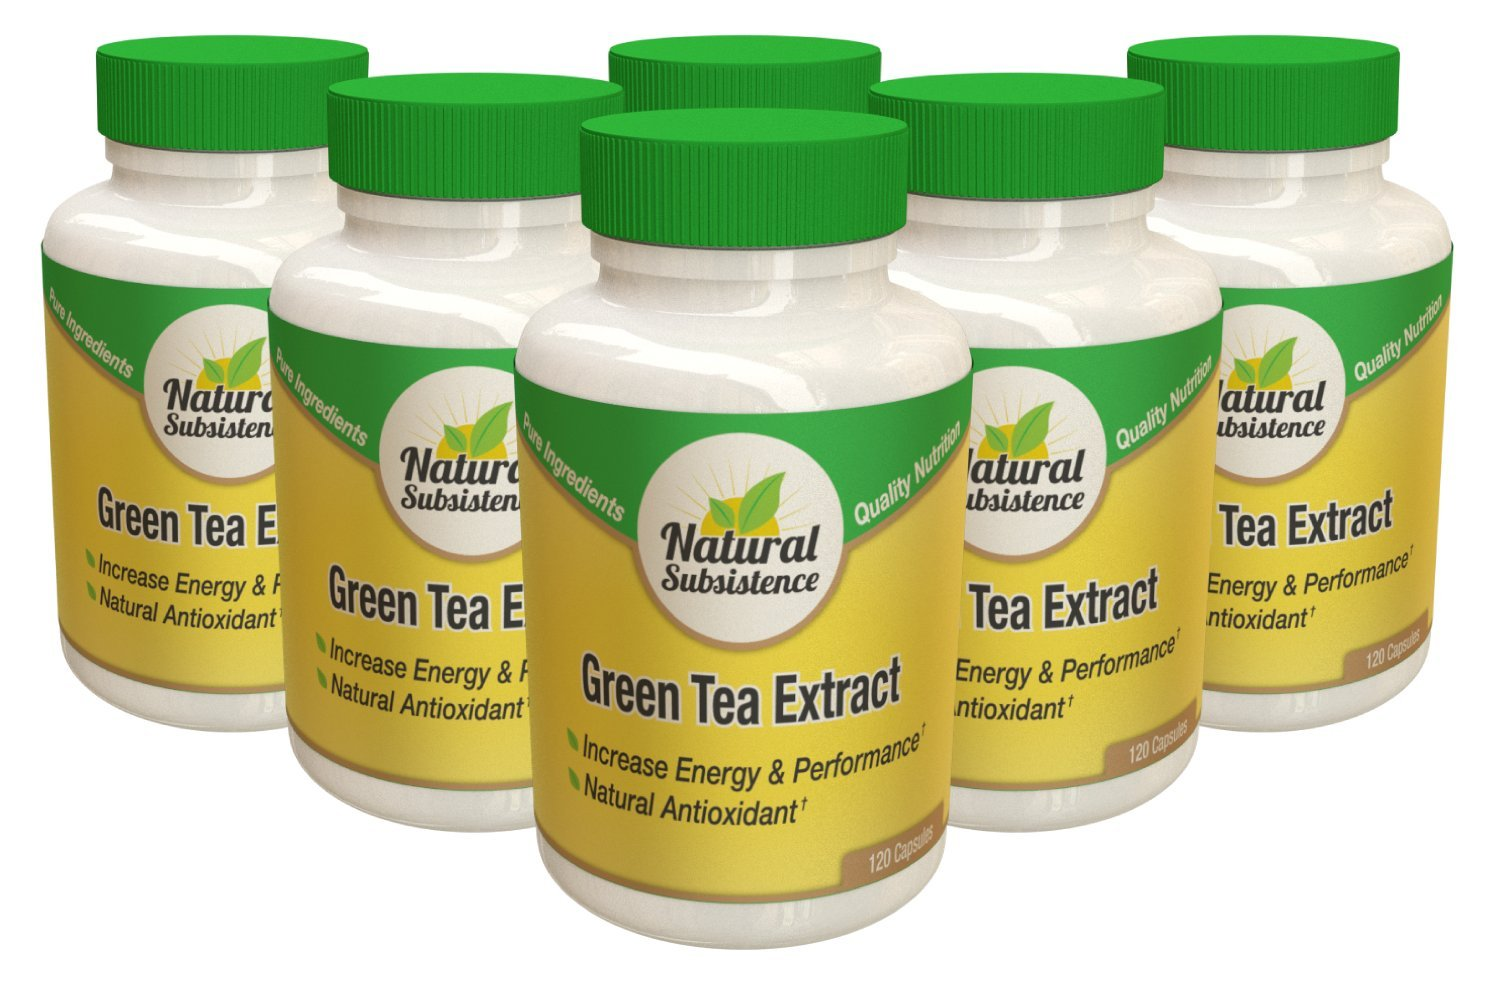 Extra Strength Green Tea Extract! Supports Healthy Metabolism, Weight Management and Energy Levels! 6 Bottles for The Price of 3! by Natural Subsistence